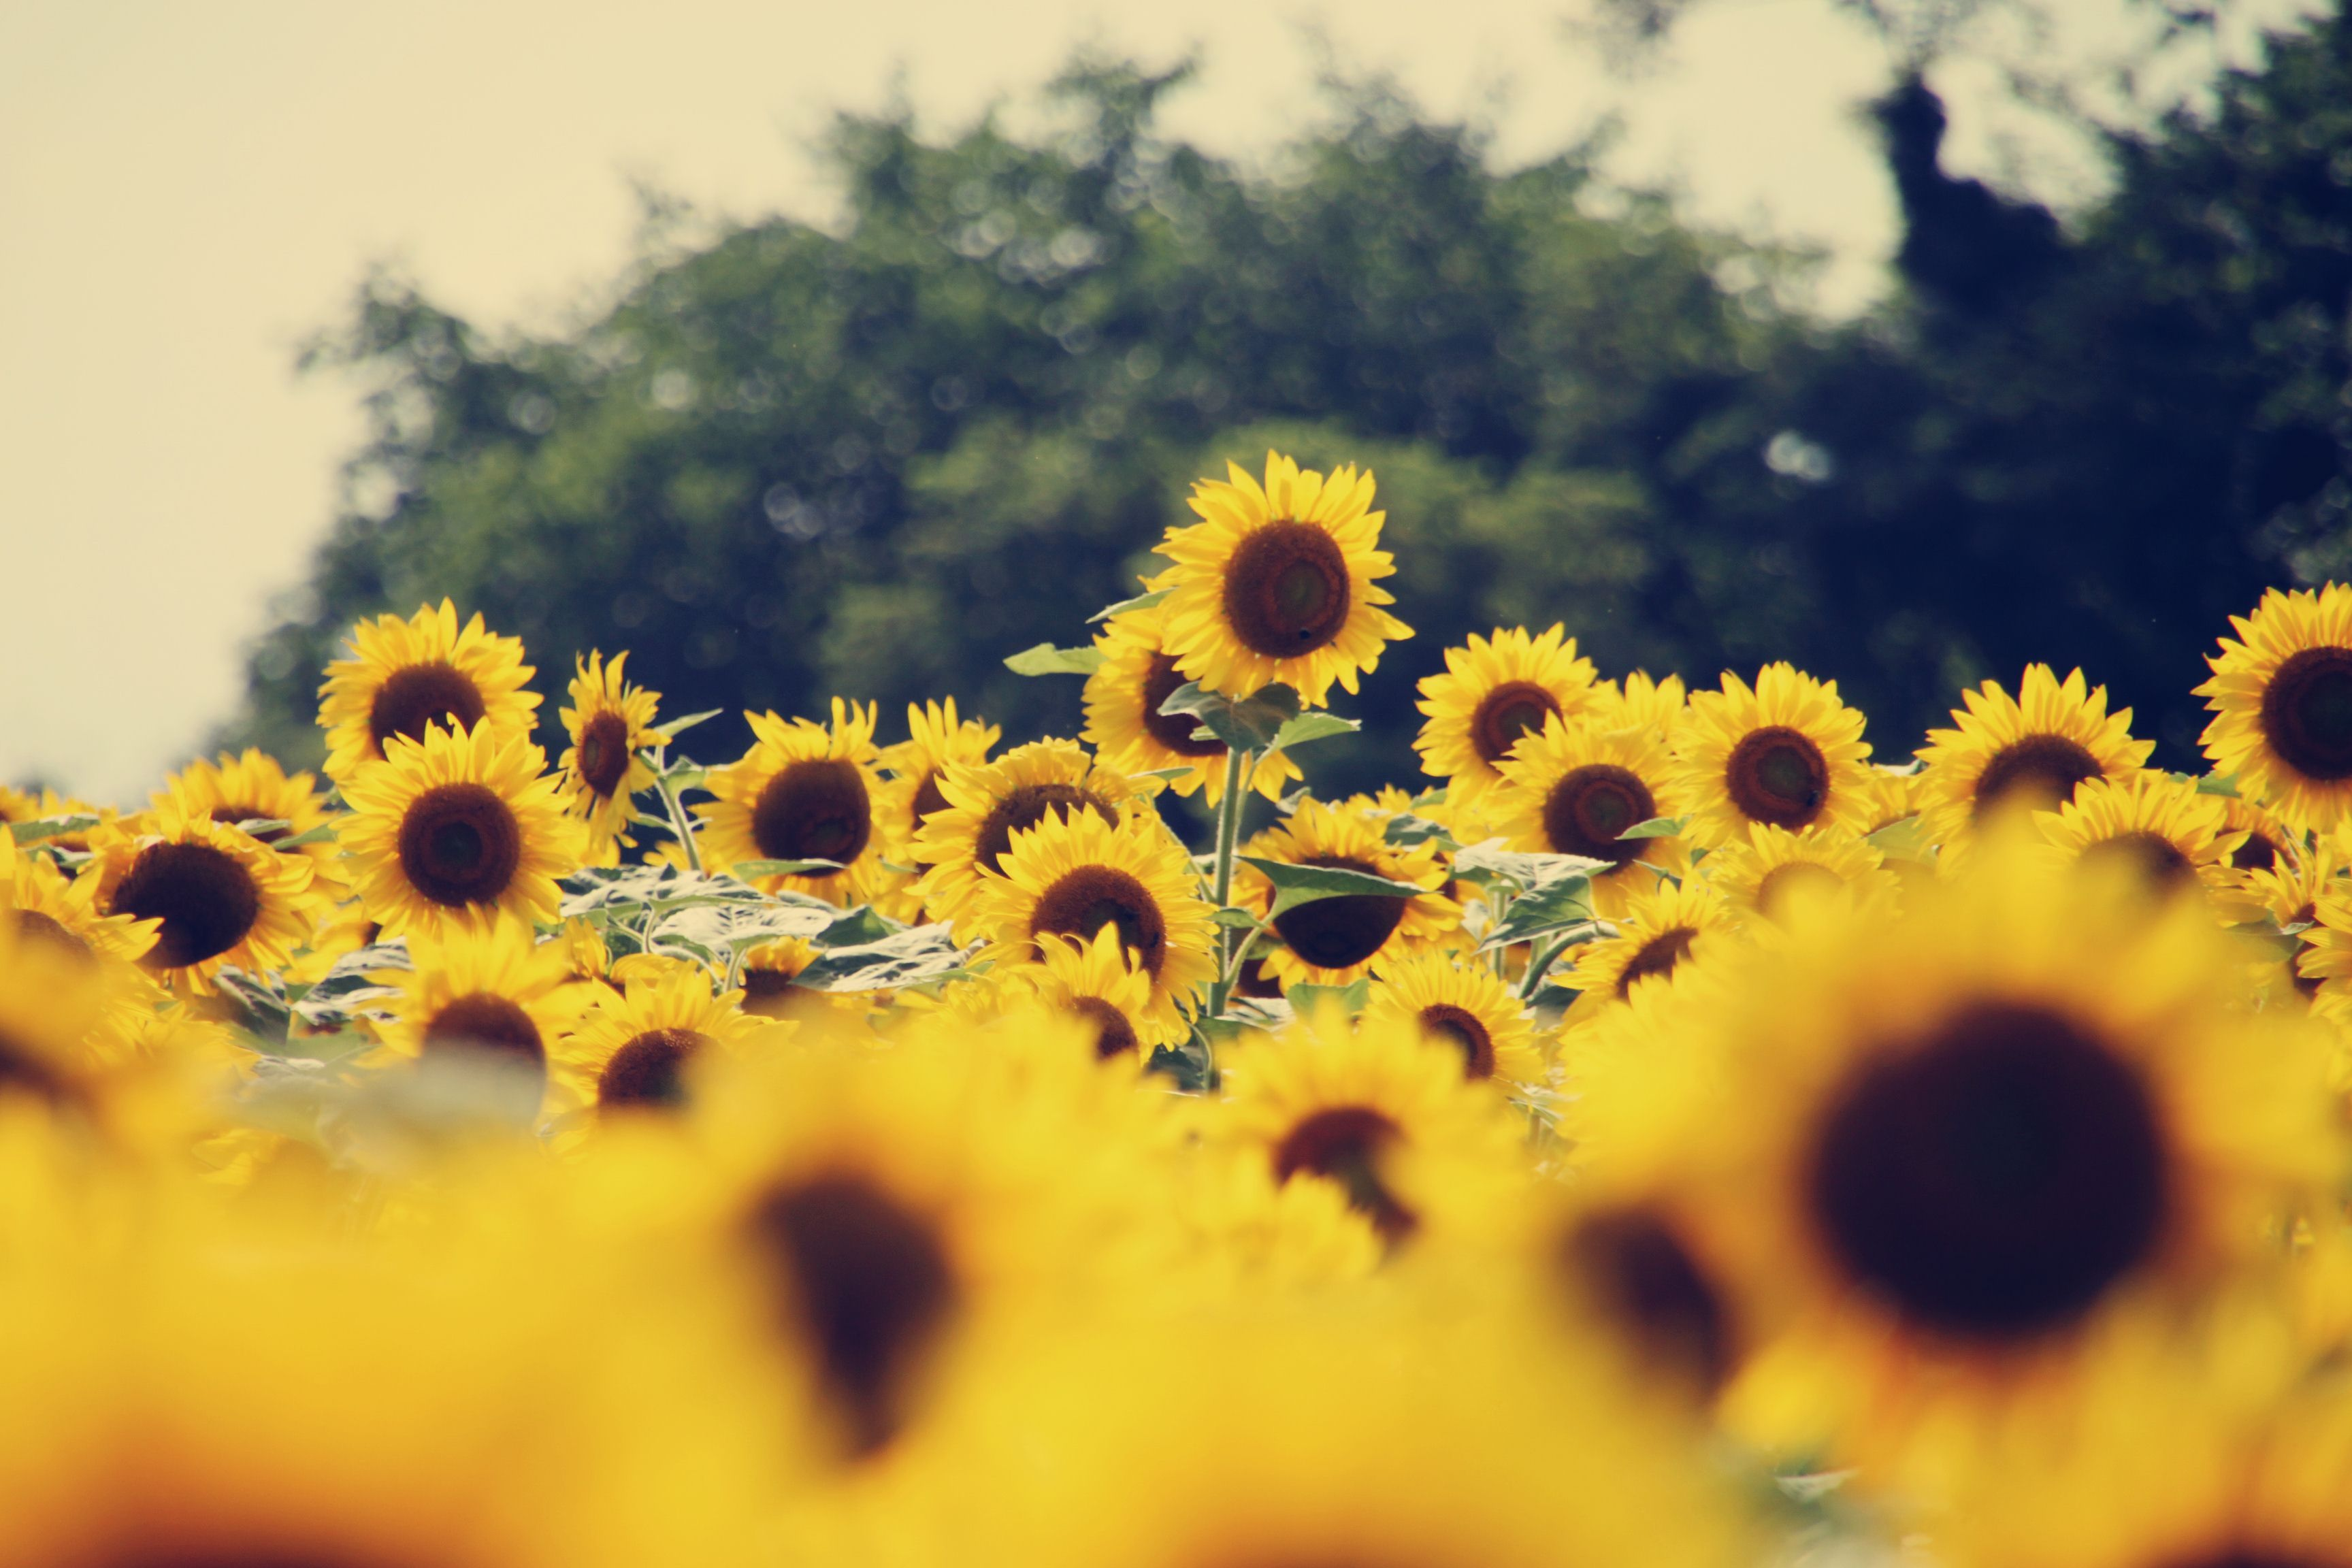 Vintage Sunflower Wallpapers , Top Free Vintage Sunflower